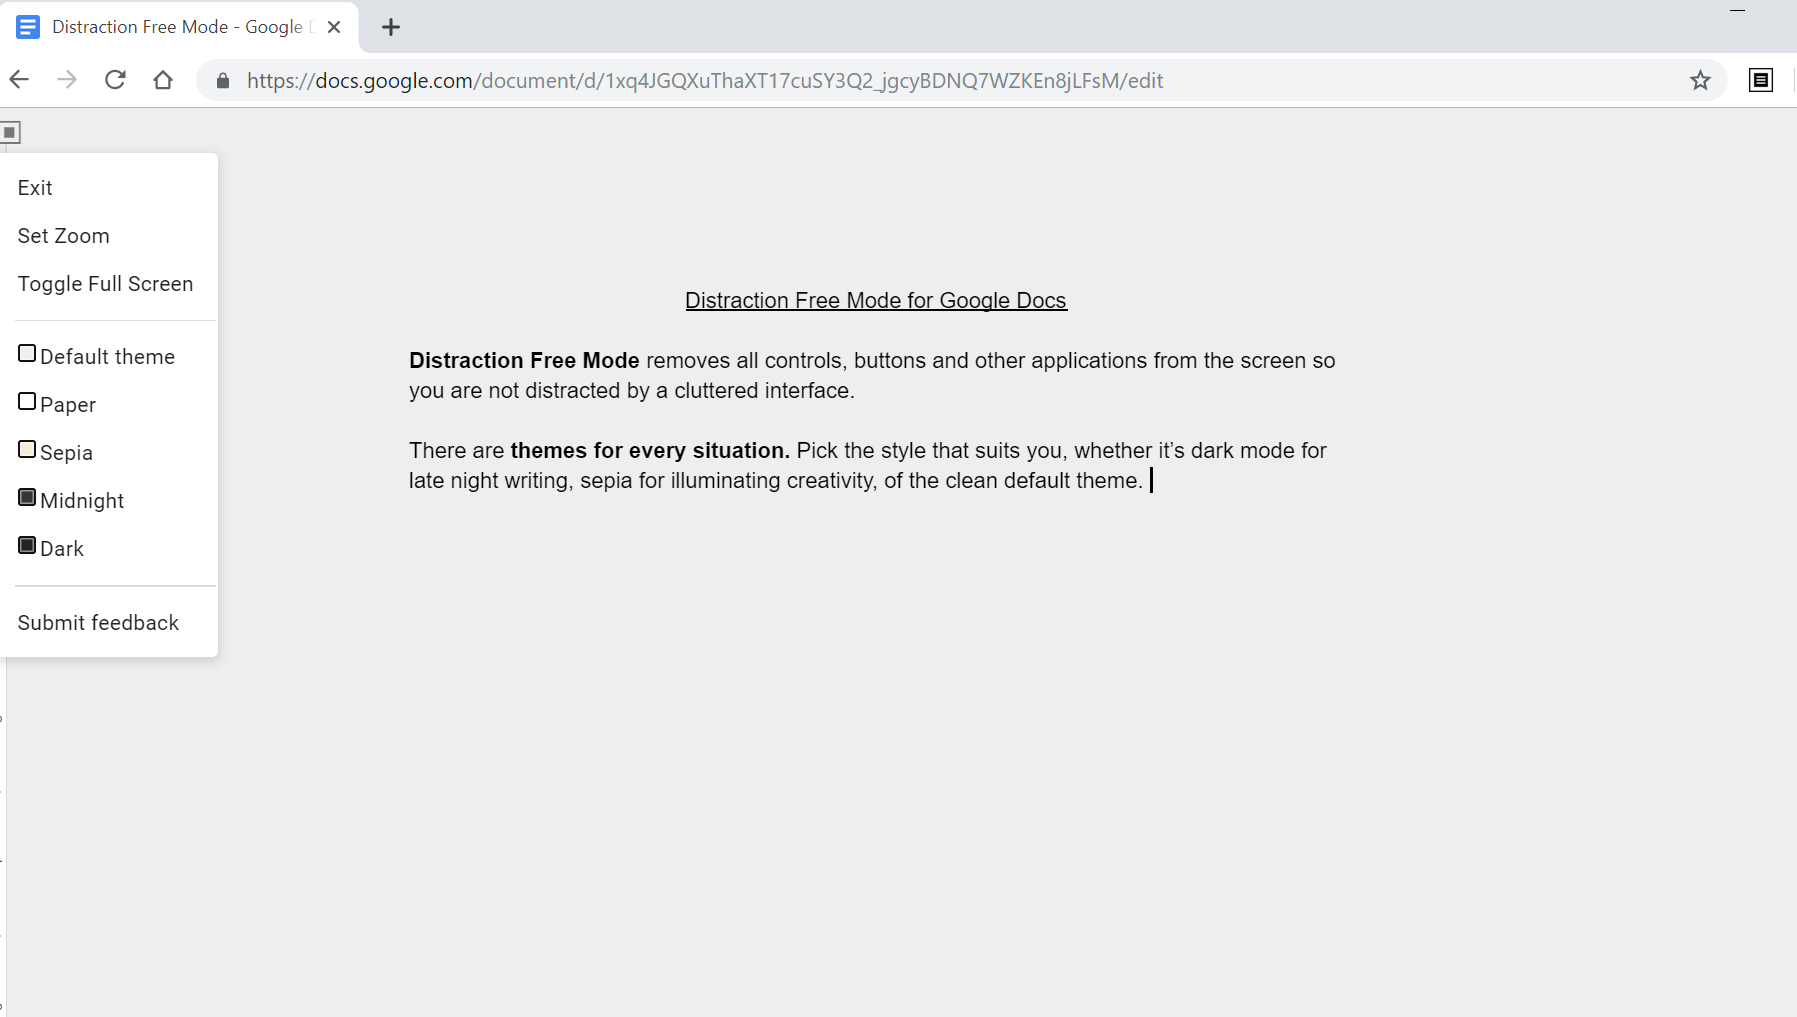 Screen grab of Google docs distraction free mode